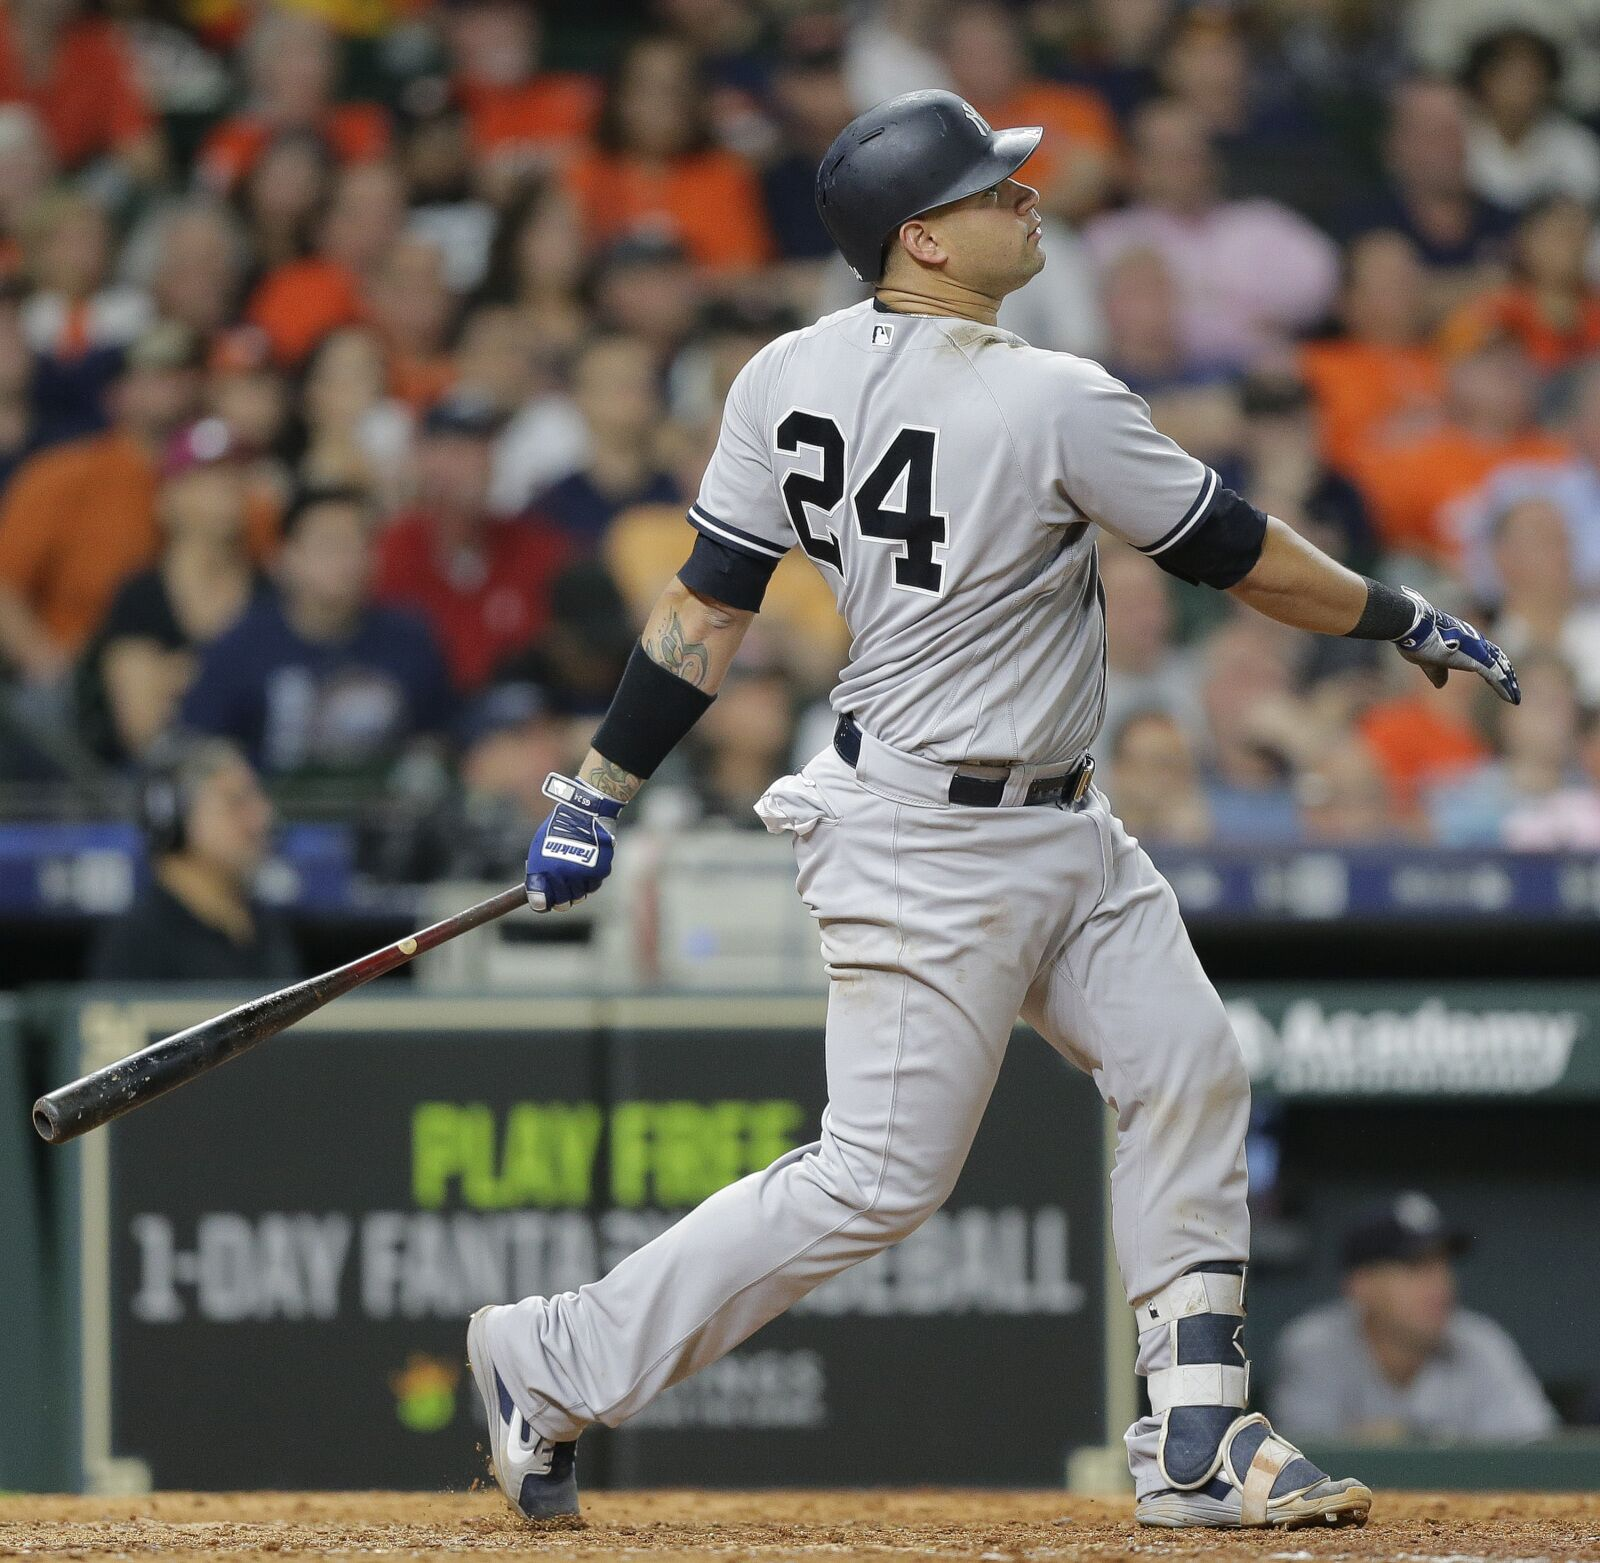 Mlb Rumors Analyzing All The Latest Whispers News And: Yankees Would Be Crazy To Trade Gary Sanchez For J.T. Realmuto